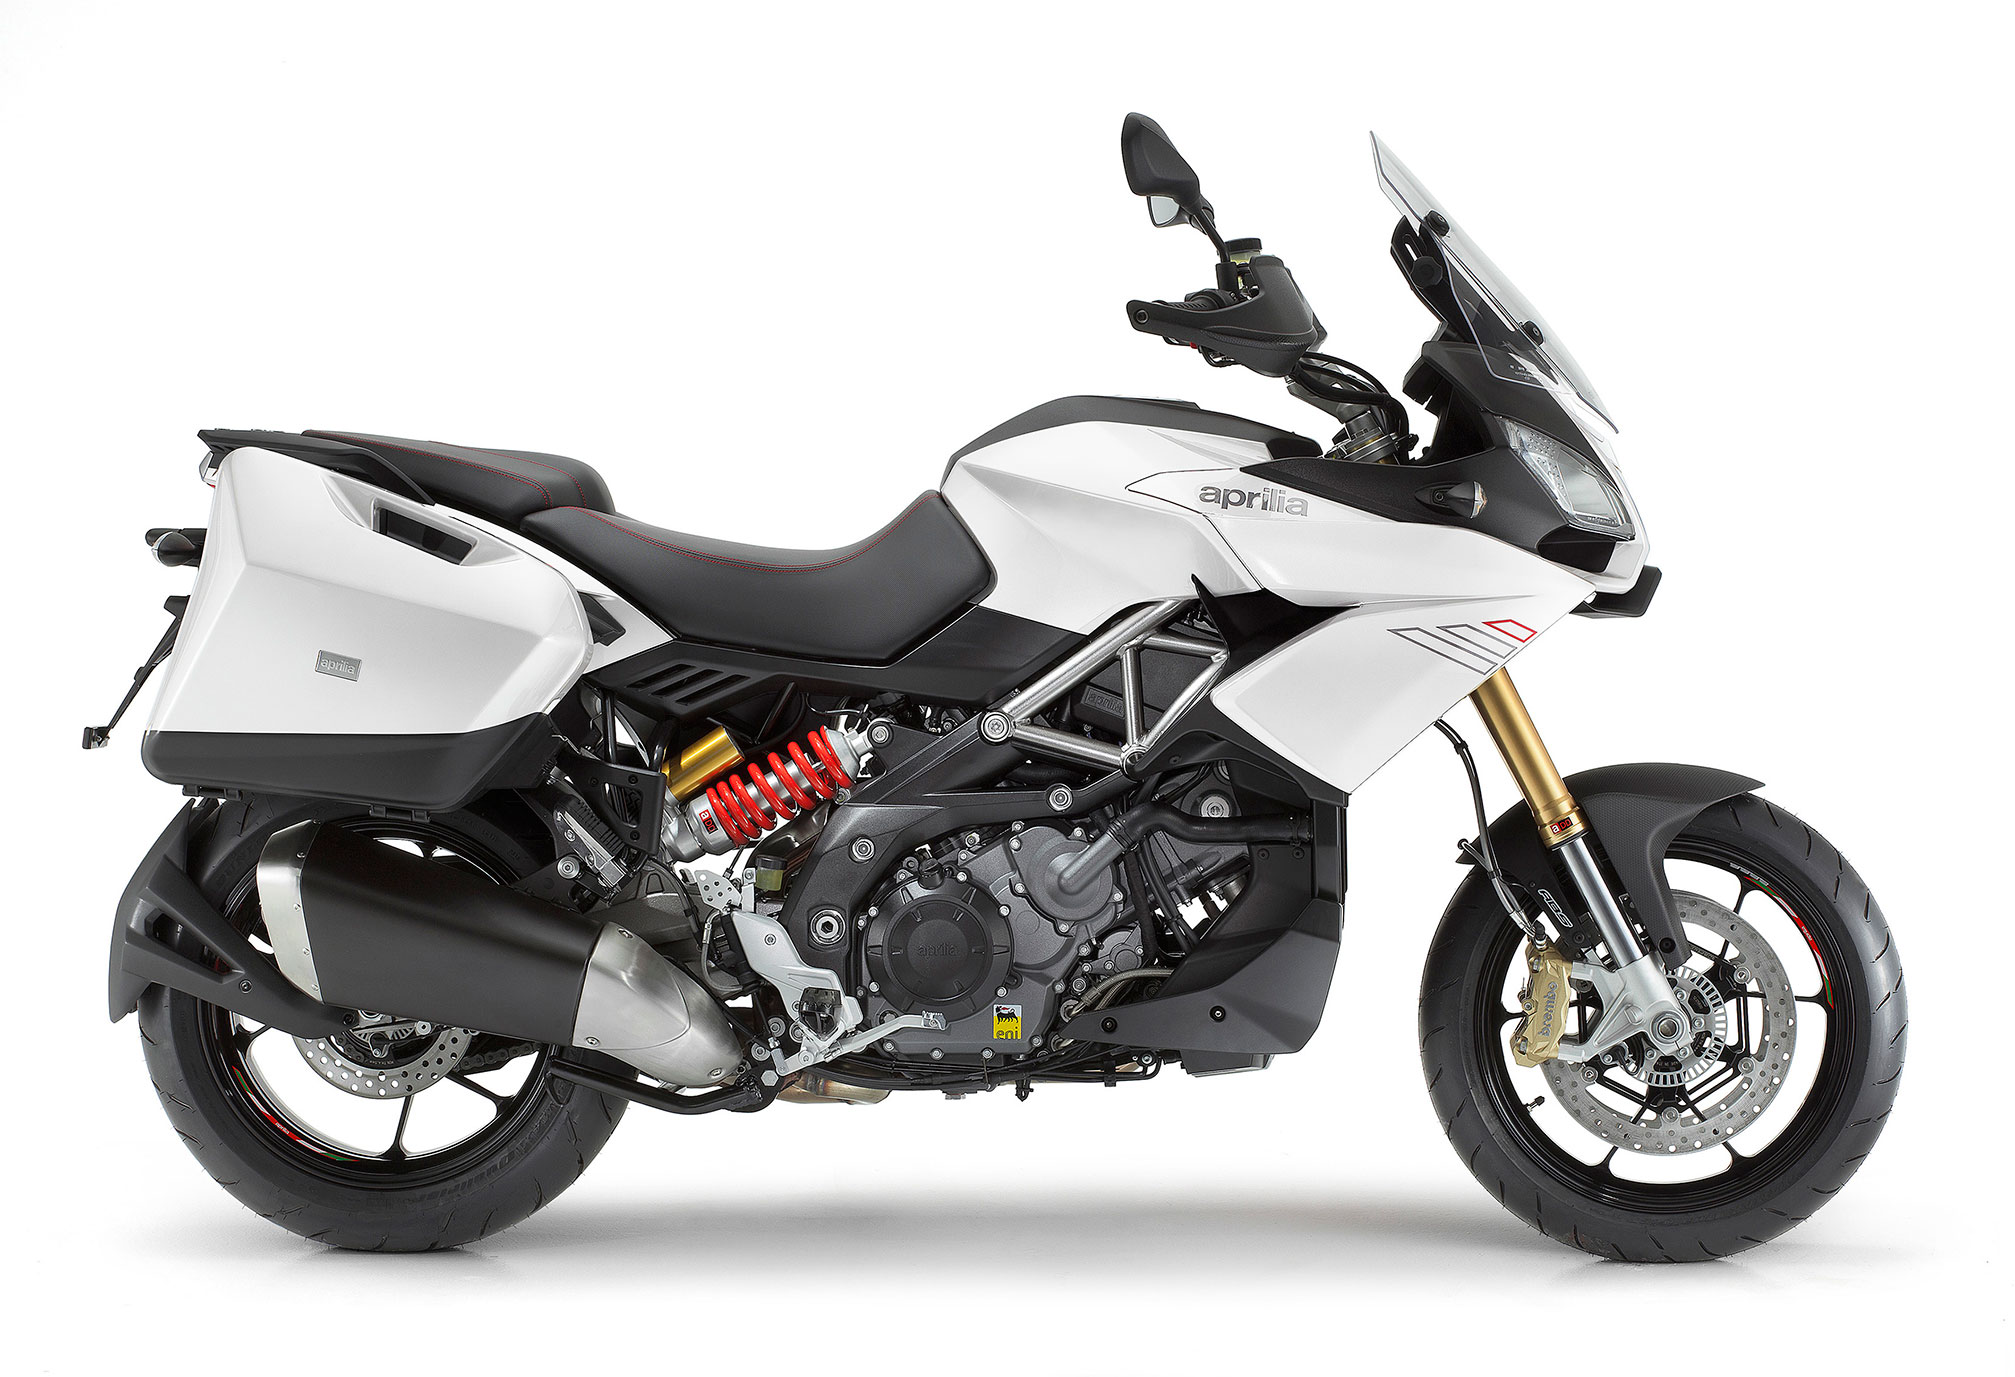 aprilia caponord 1200 abs travel pack specs 2014 2015 autoevolution. Black Bedroom Furniture Sets. Home Design Ideas